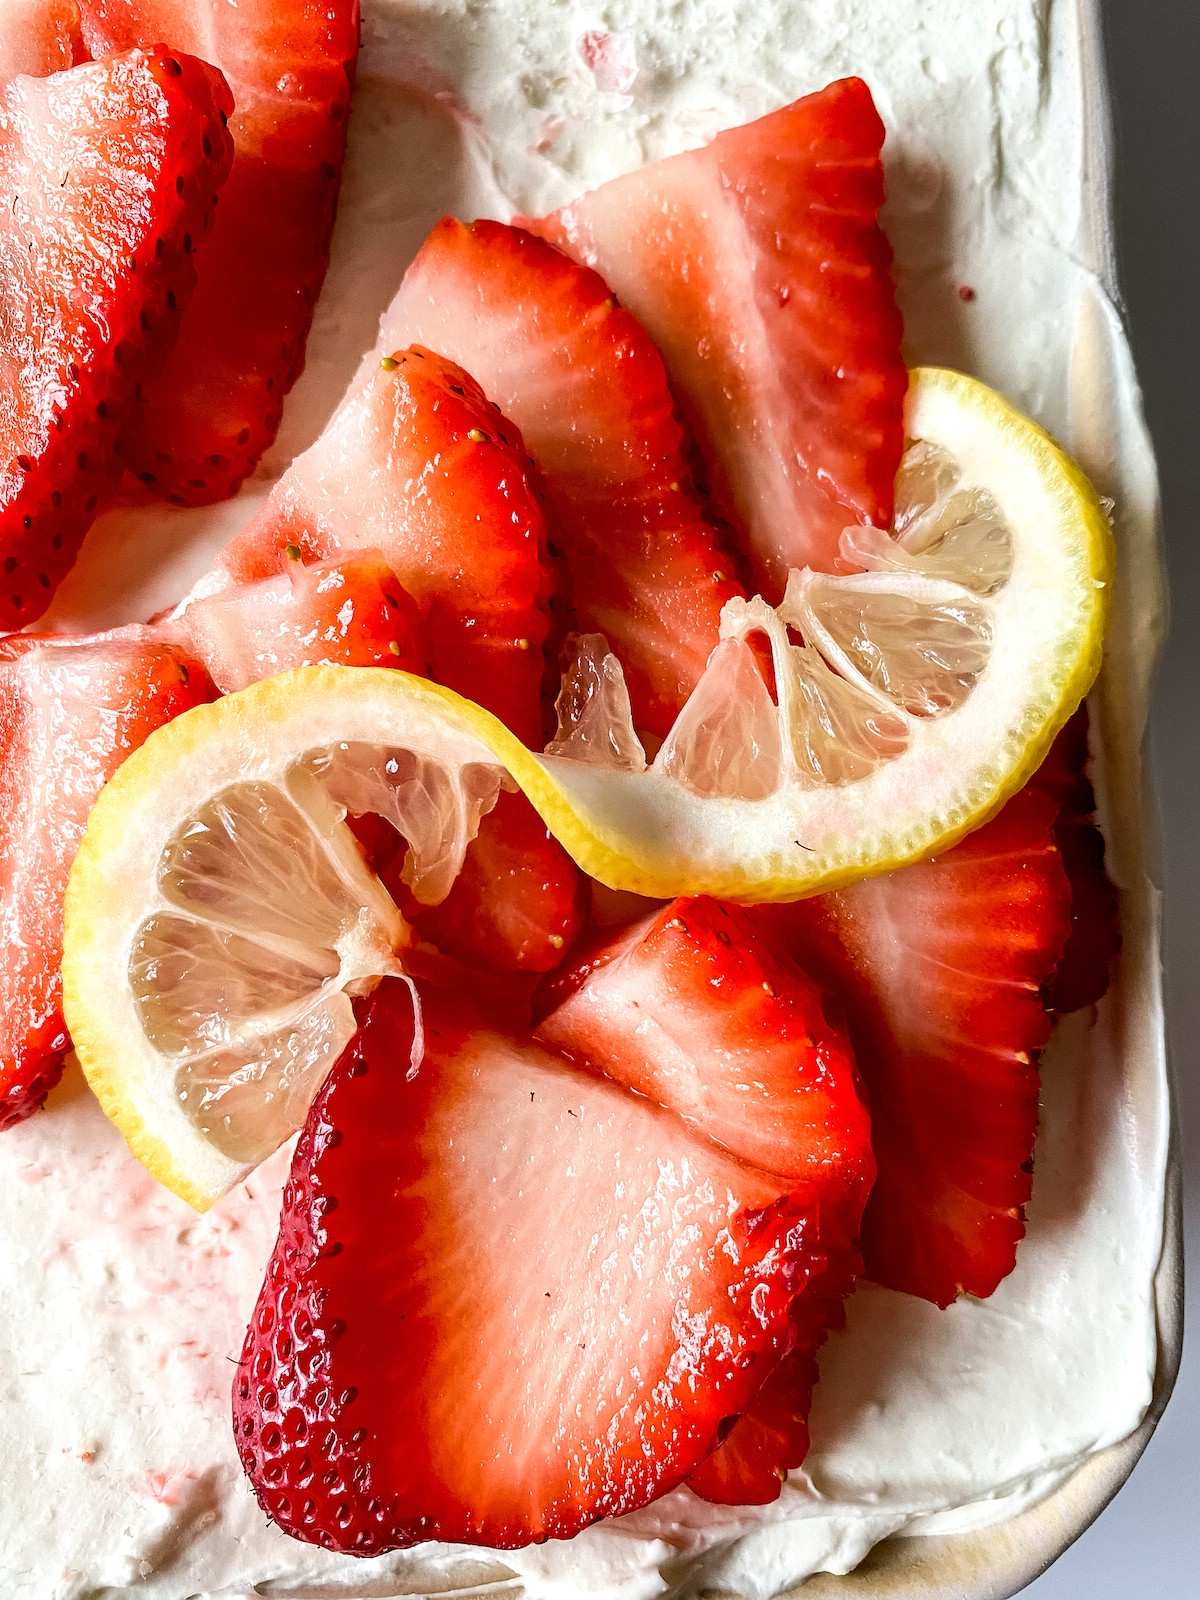 Lemon cheesecake with strawberry and lemon slices on top